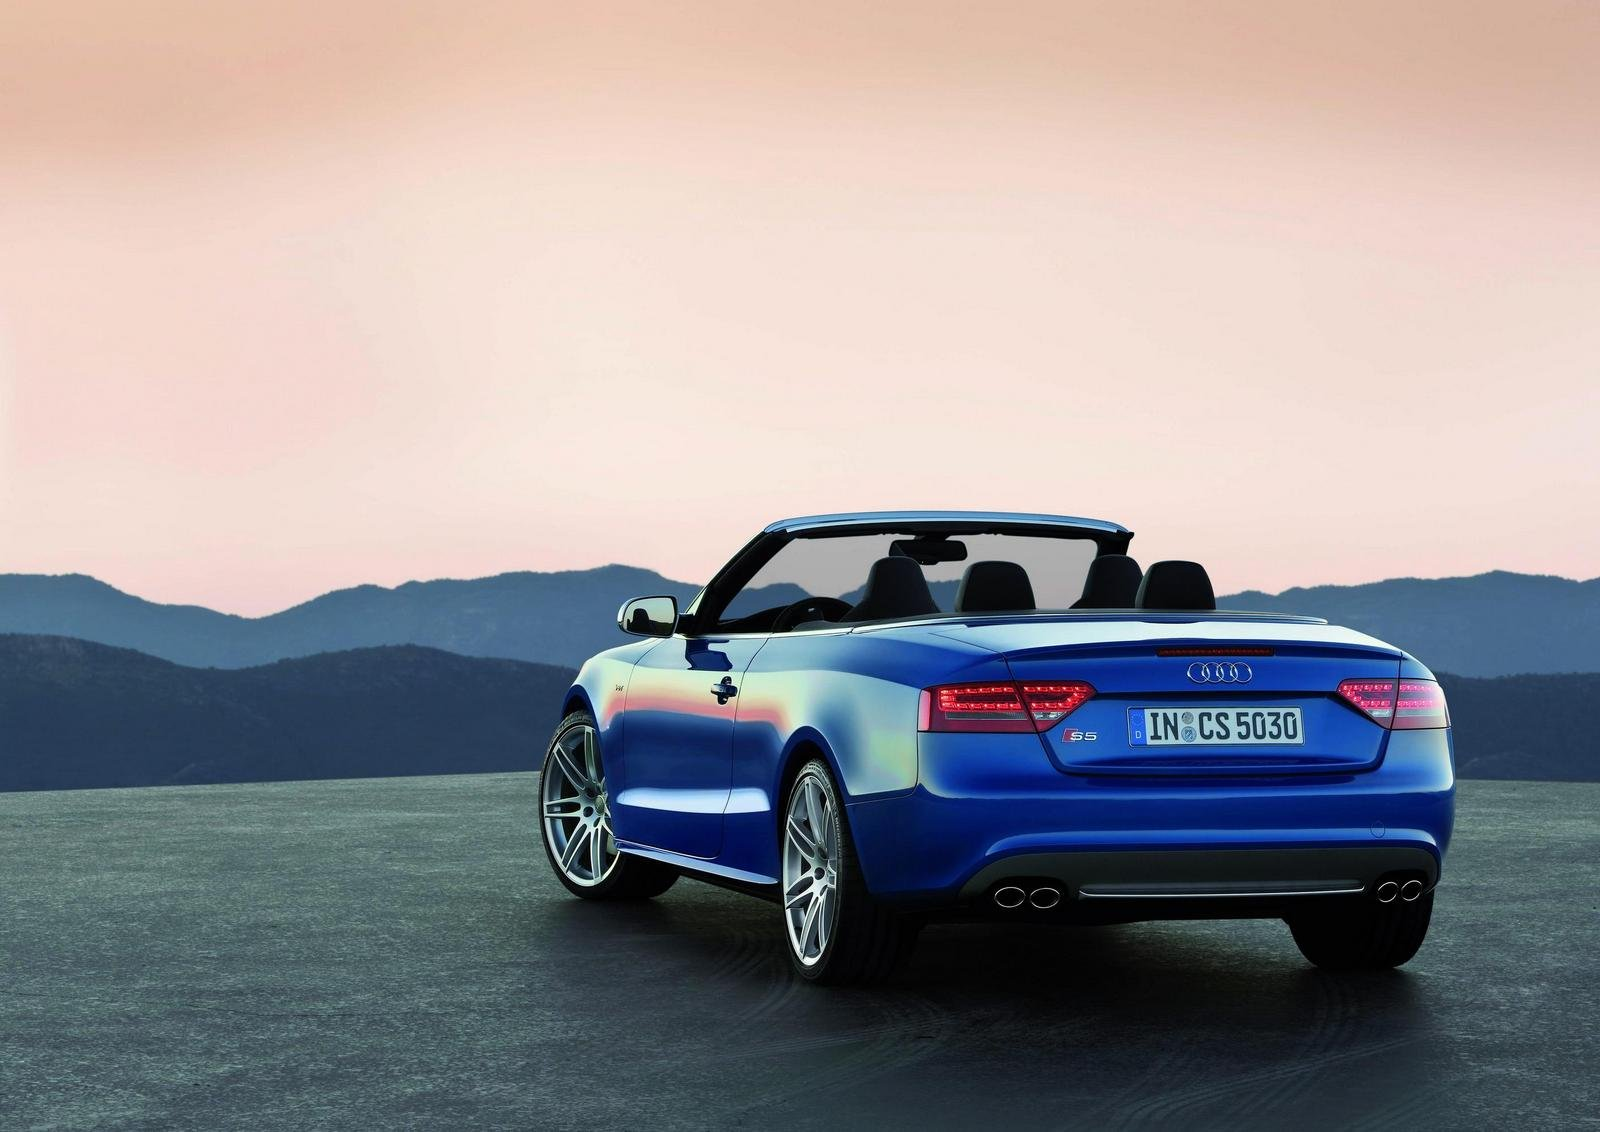 2009 Audi A5/S5 Convertible Review - Top Speed